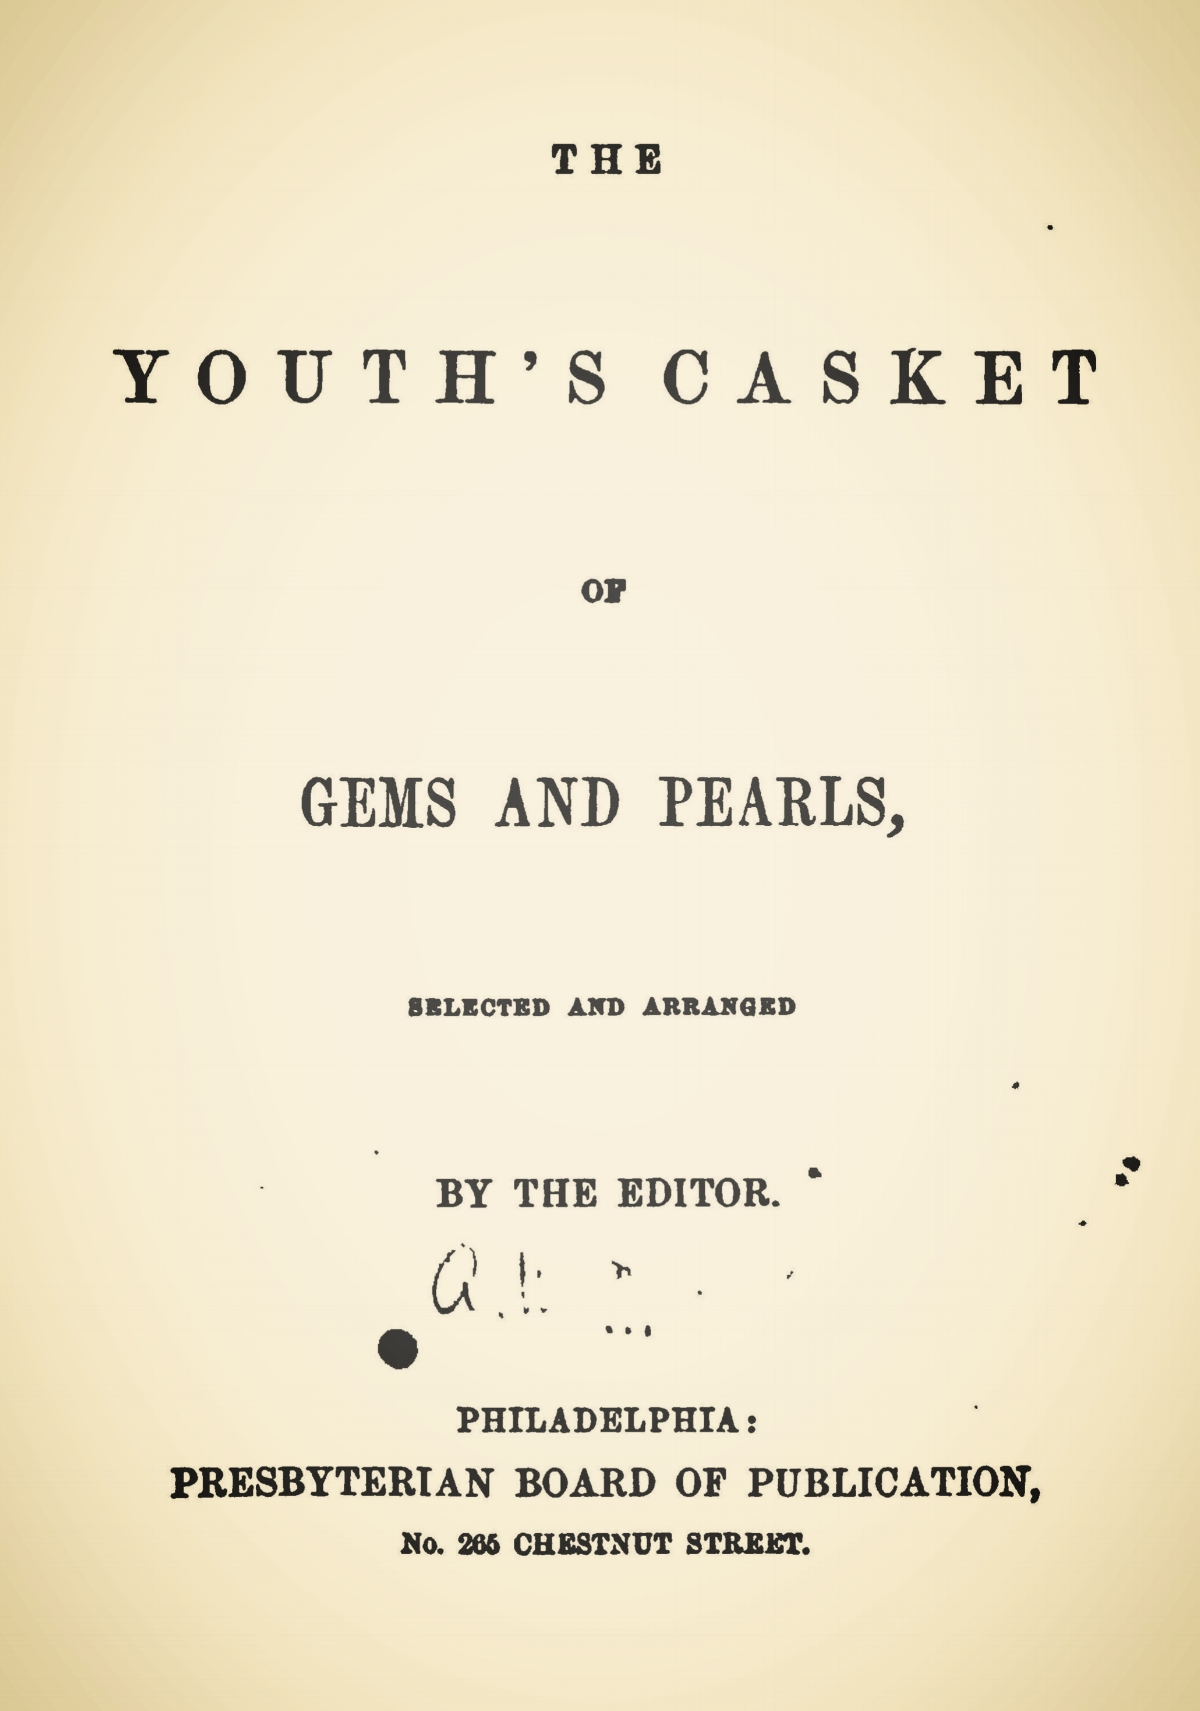 Engles, William Morrison, The Youth's Casket Title Page.jpg